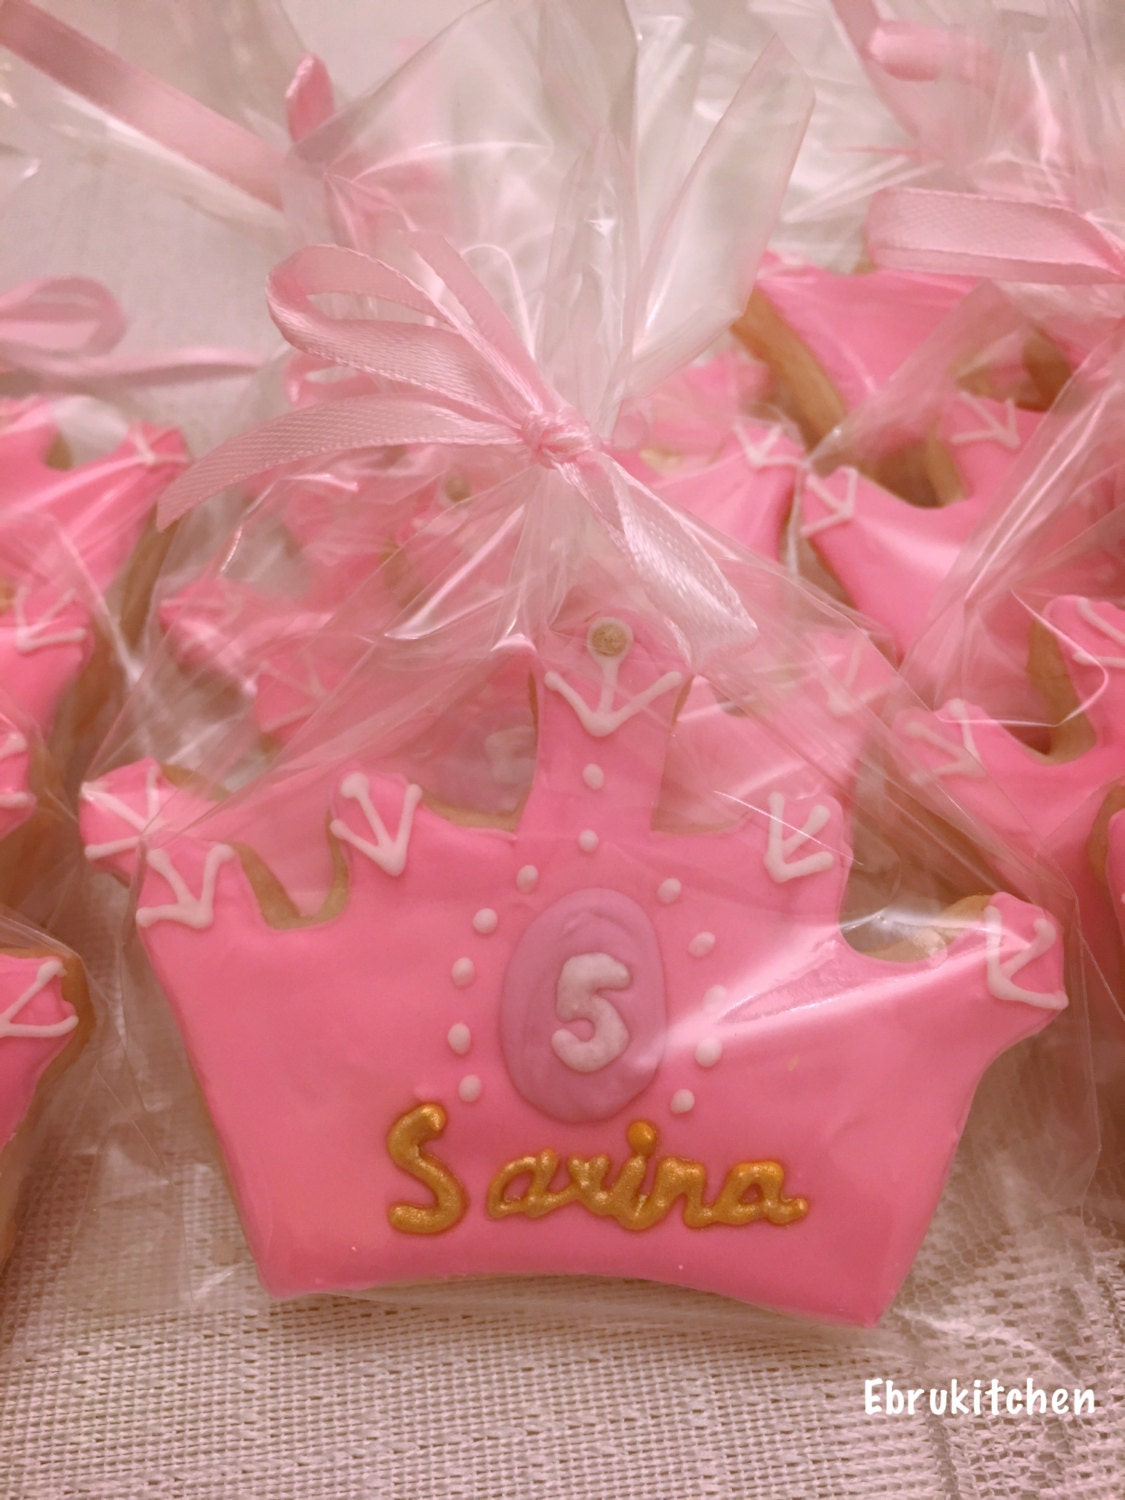 Princess Crown Cookies 12 Fresh Baked Cookies with Gold